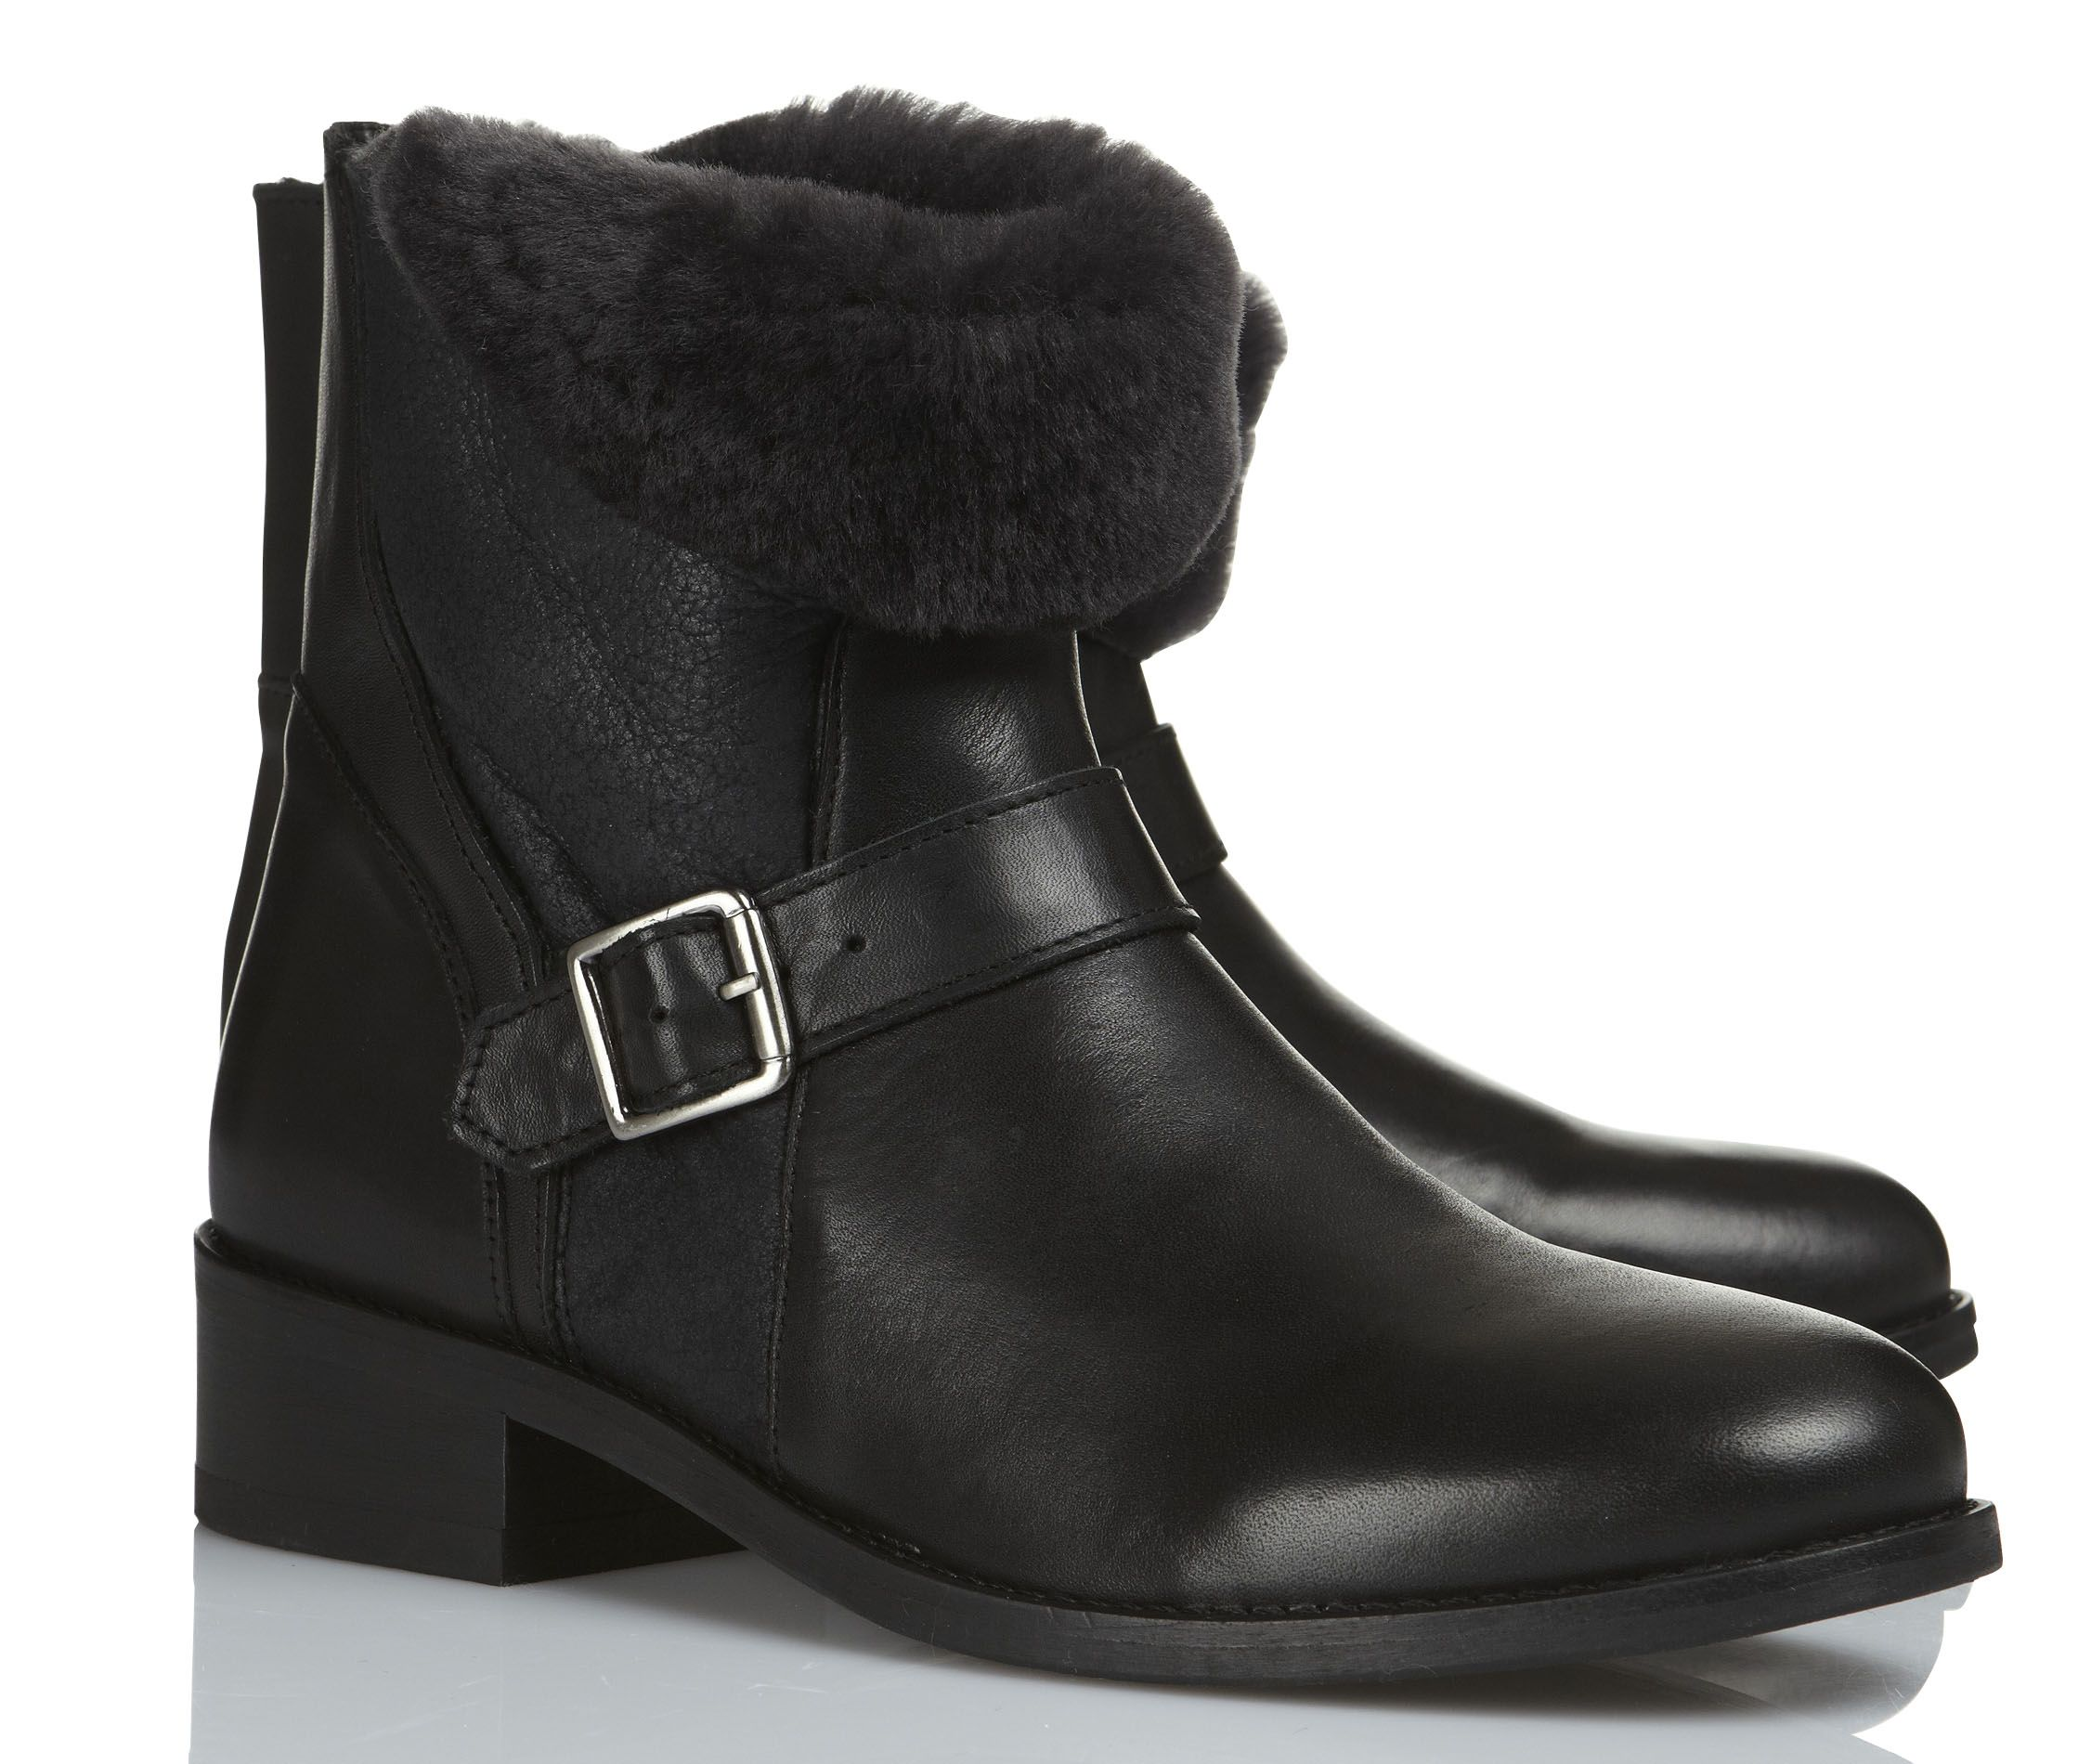 Chaussures - Cheville Collection Bottes Prive ZxO73K5Gqb